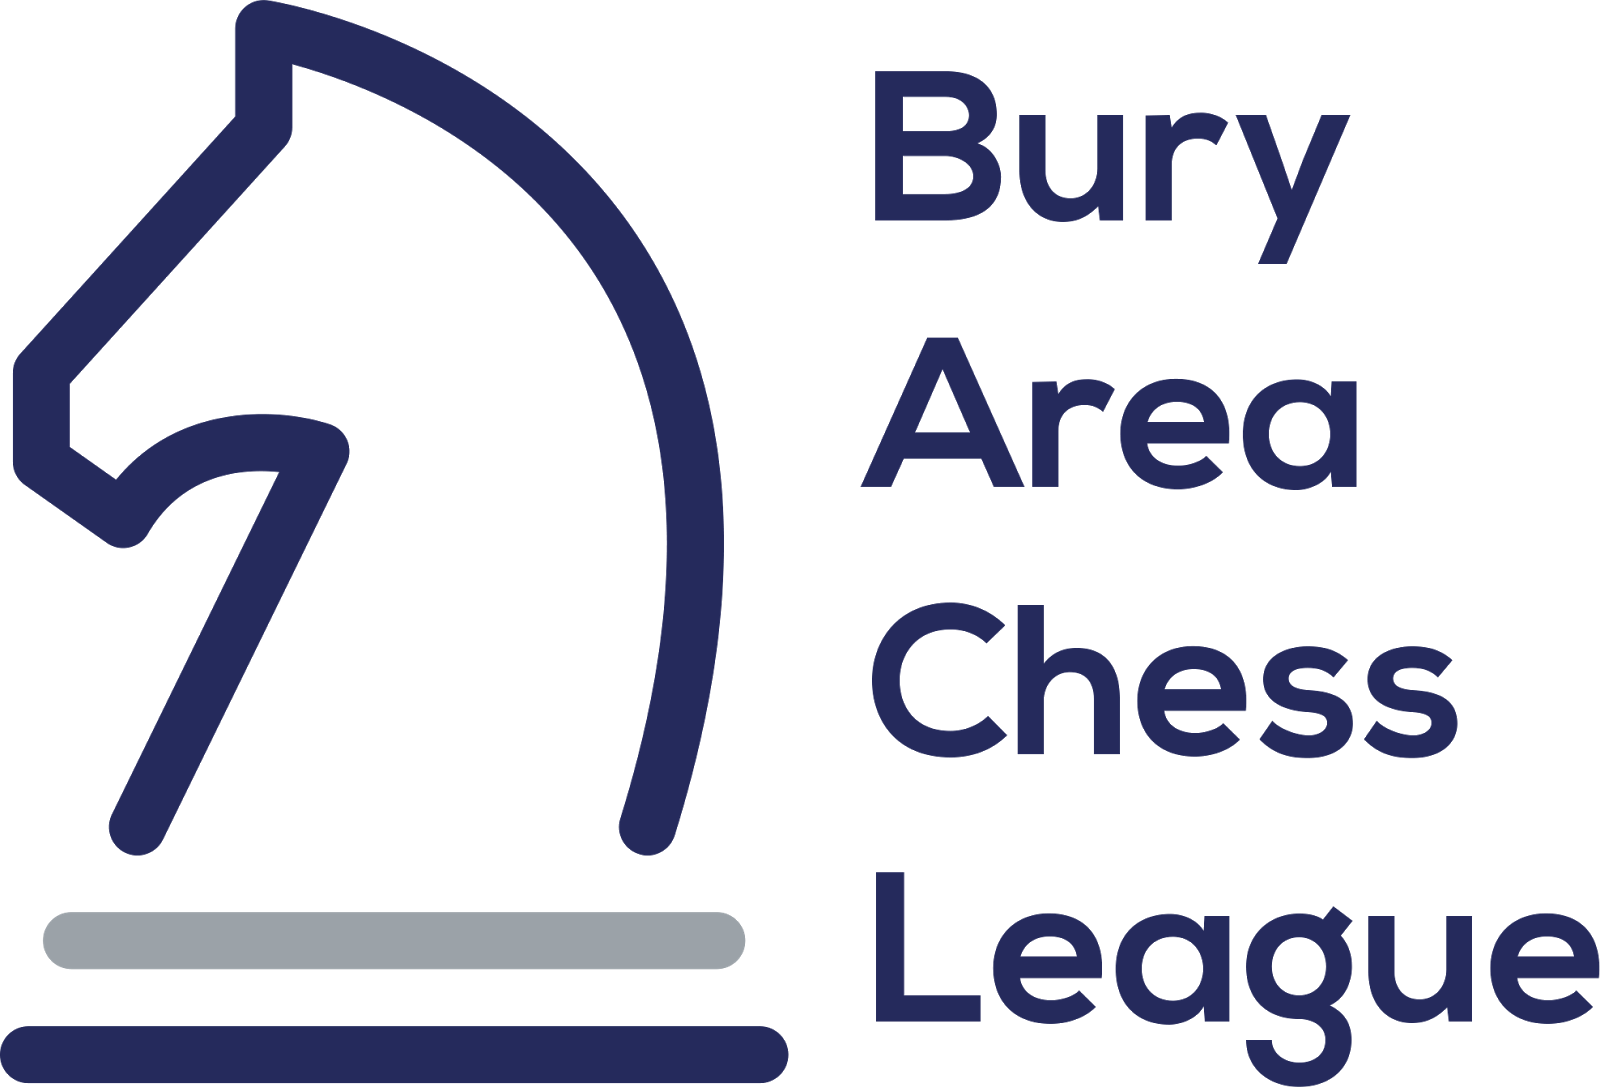 Bury Area Chess League